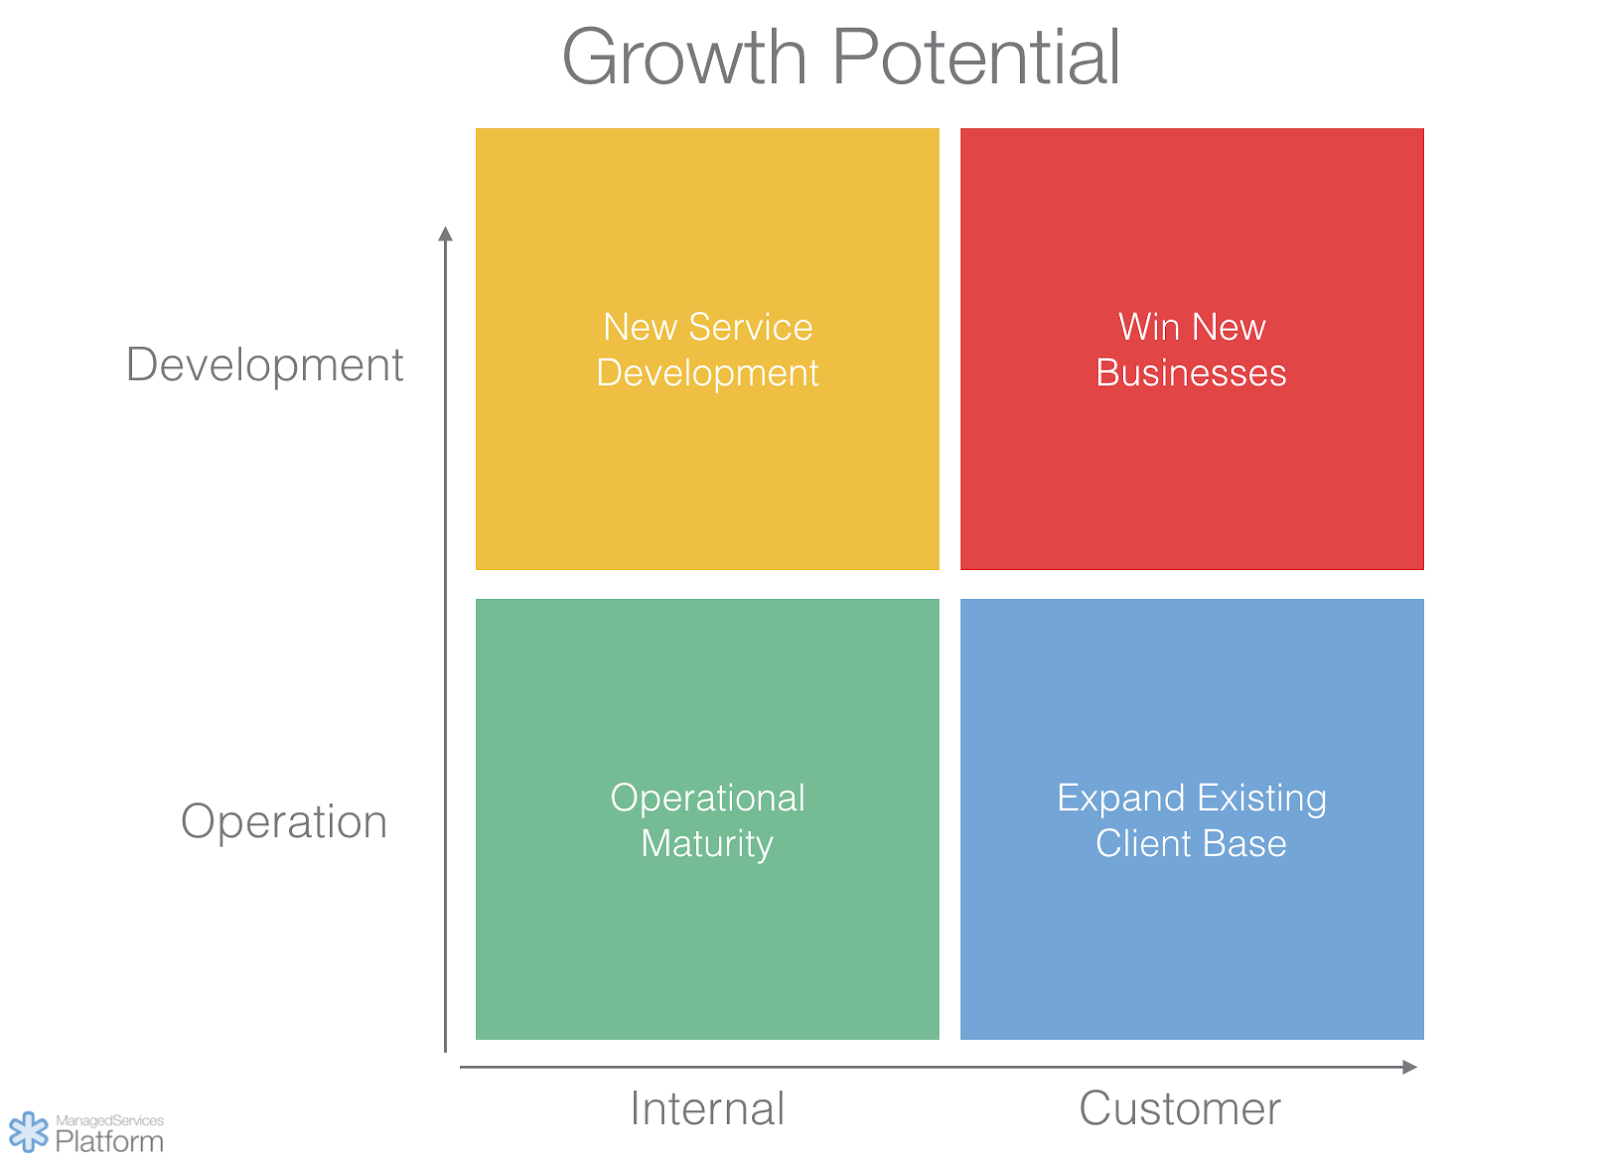 MSP growth potential